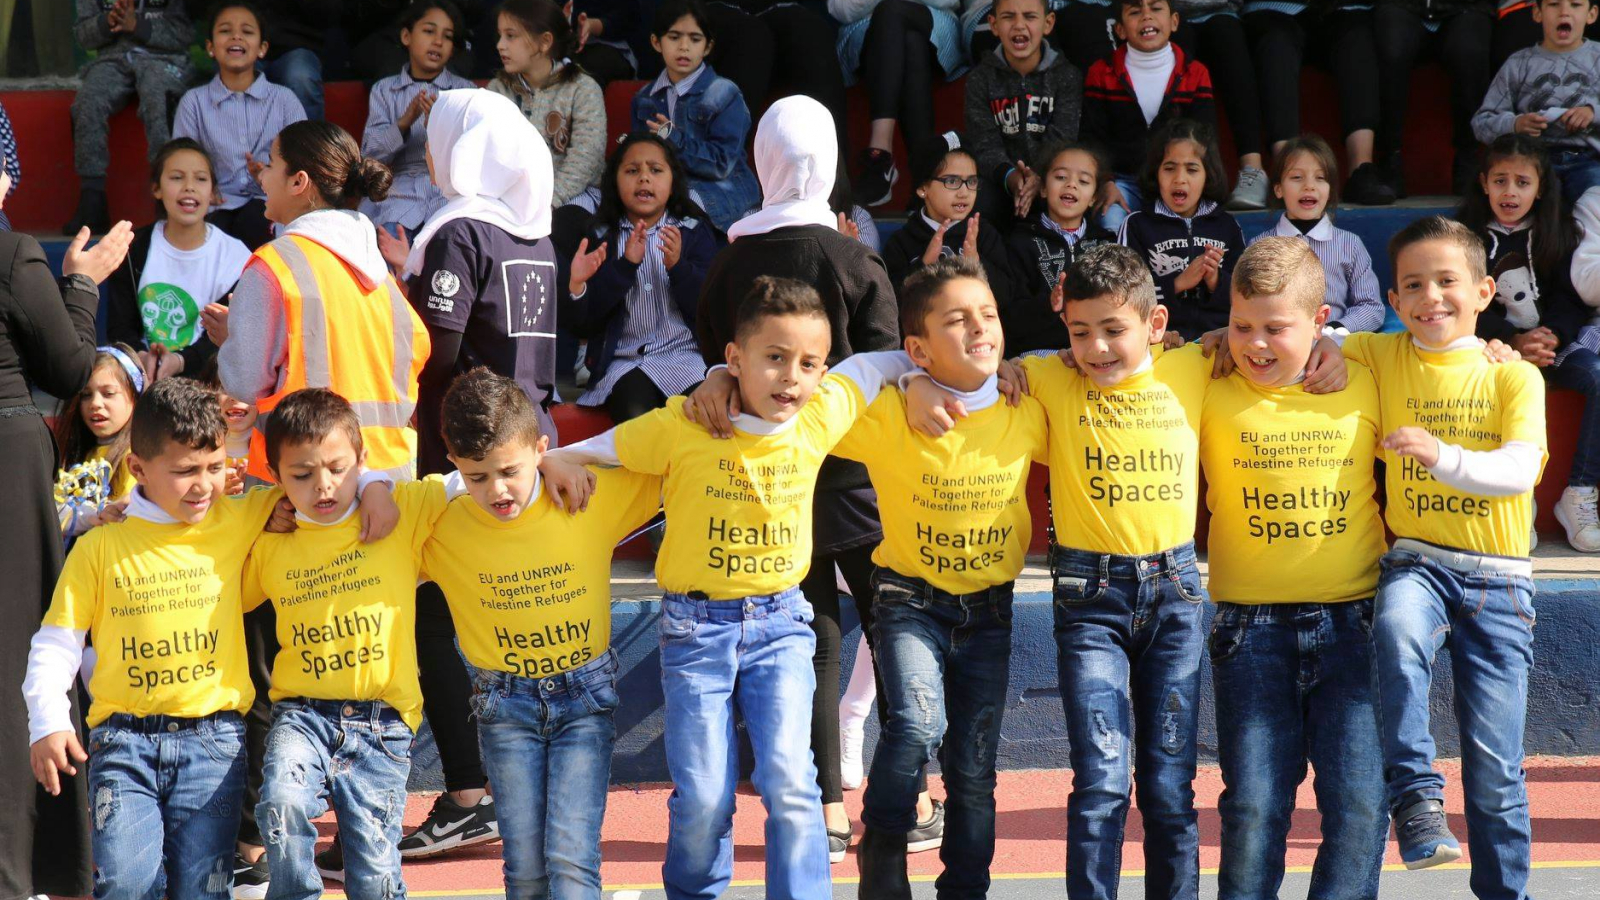 EU & UNRWA: Together for Palestine Refugees